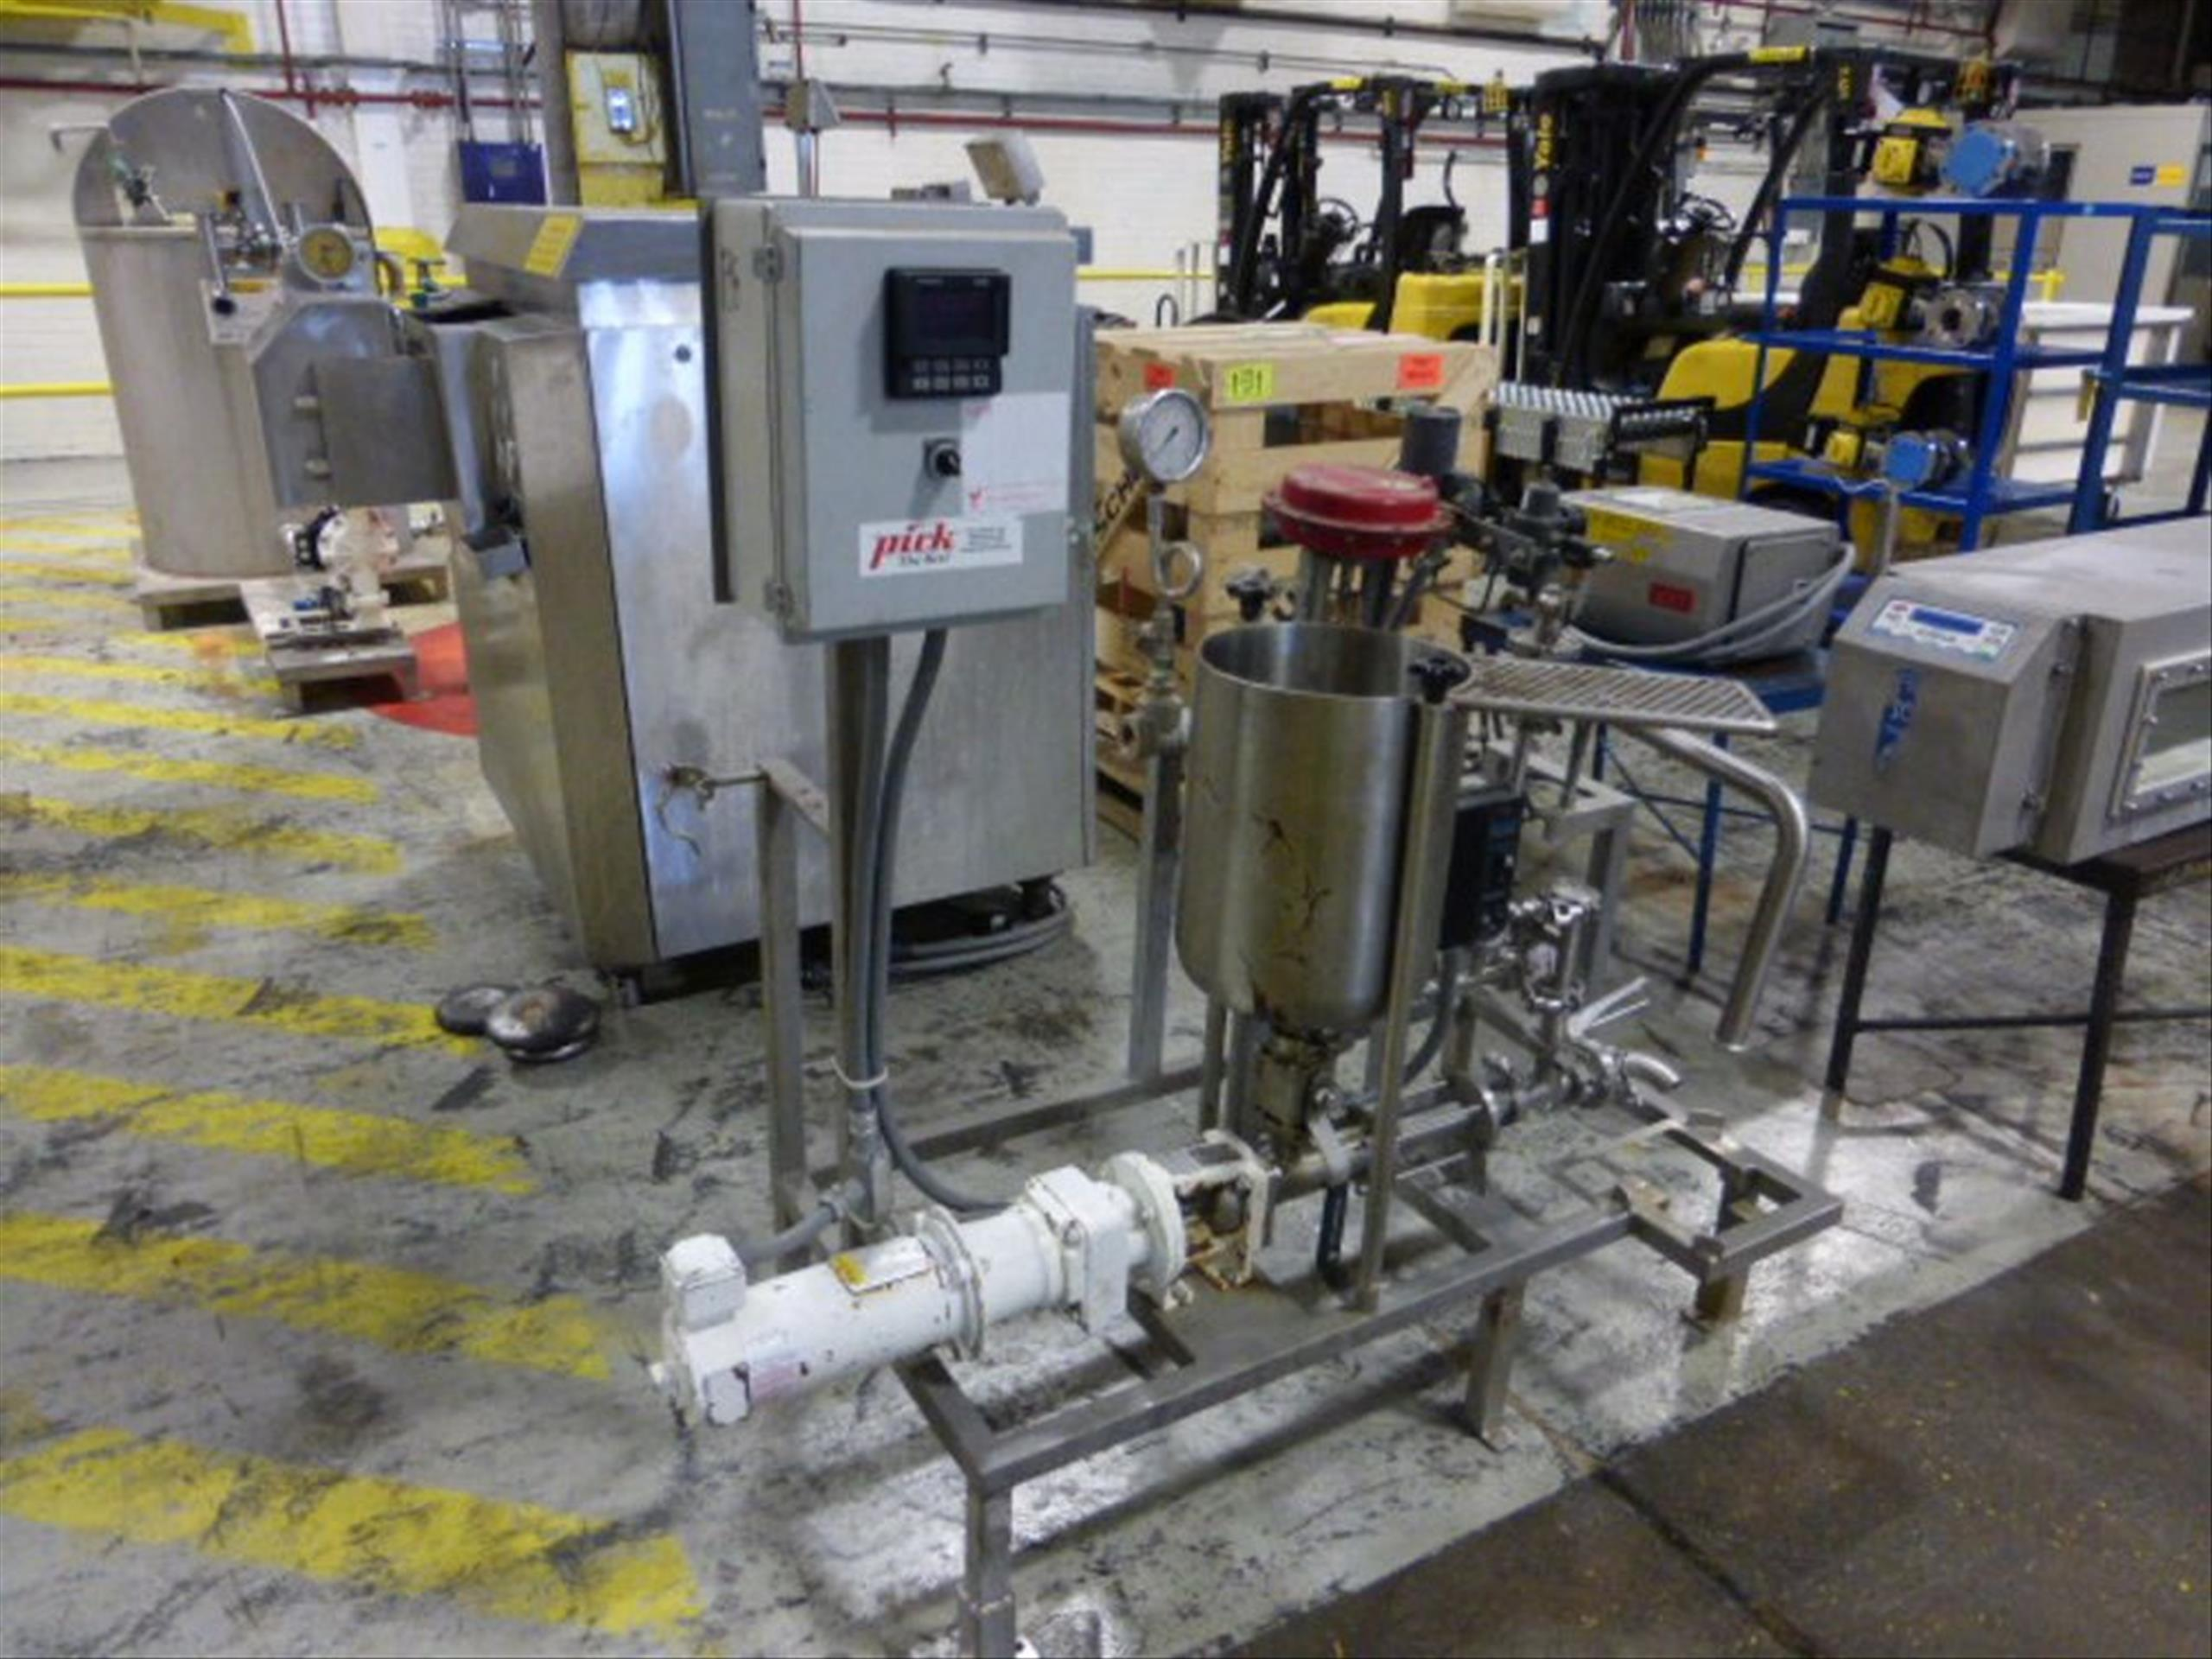 Pick Heating Process Unit with Moyno EB2A SSE3 #7427602 with 0.5 HP Stainless Steel Tank, 11.5 in - Image 2 of 3